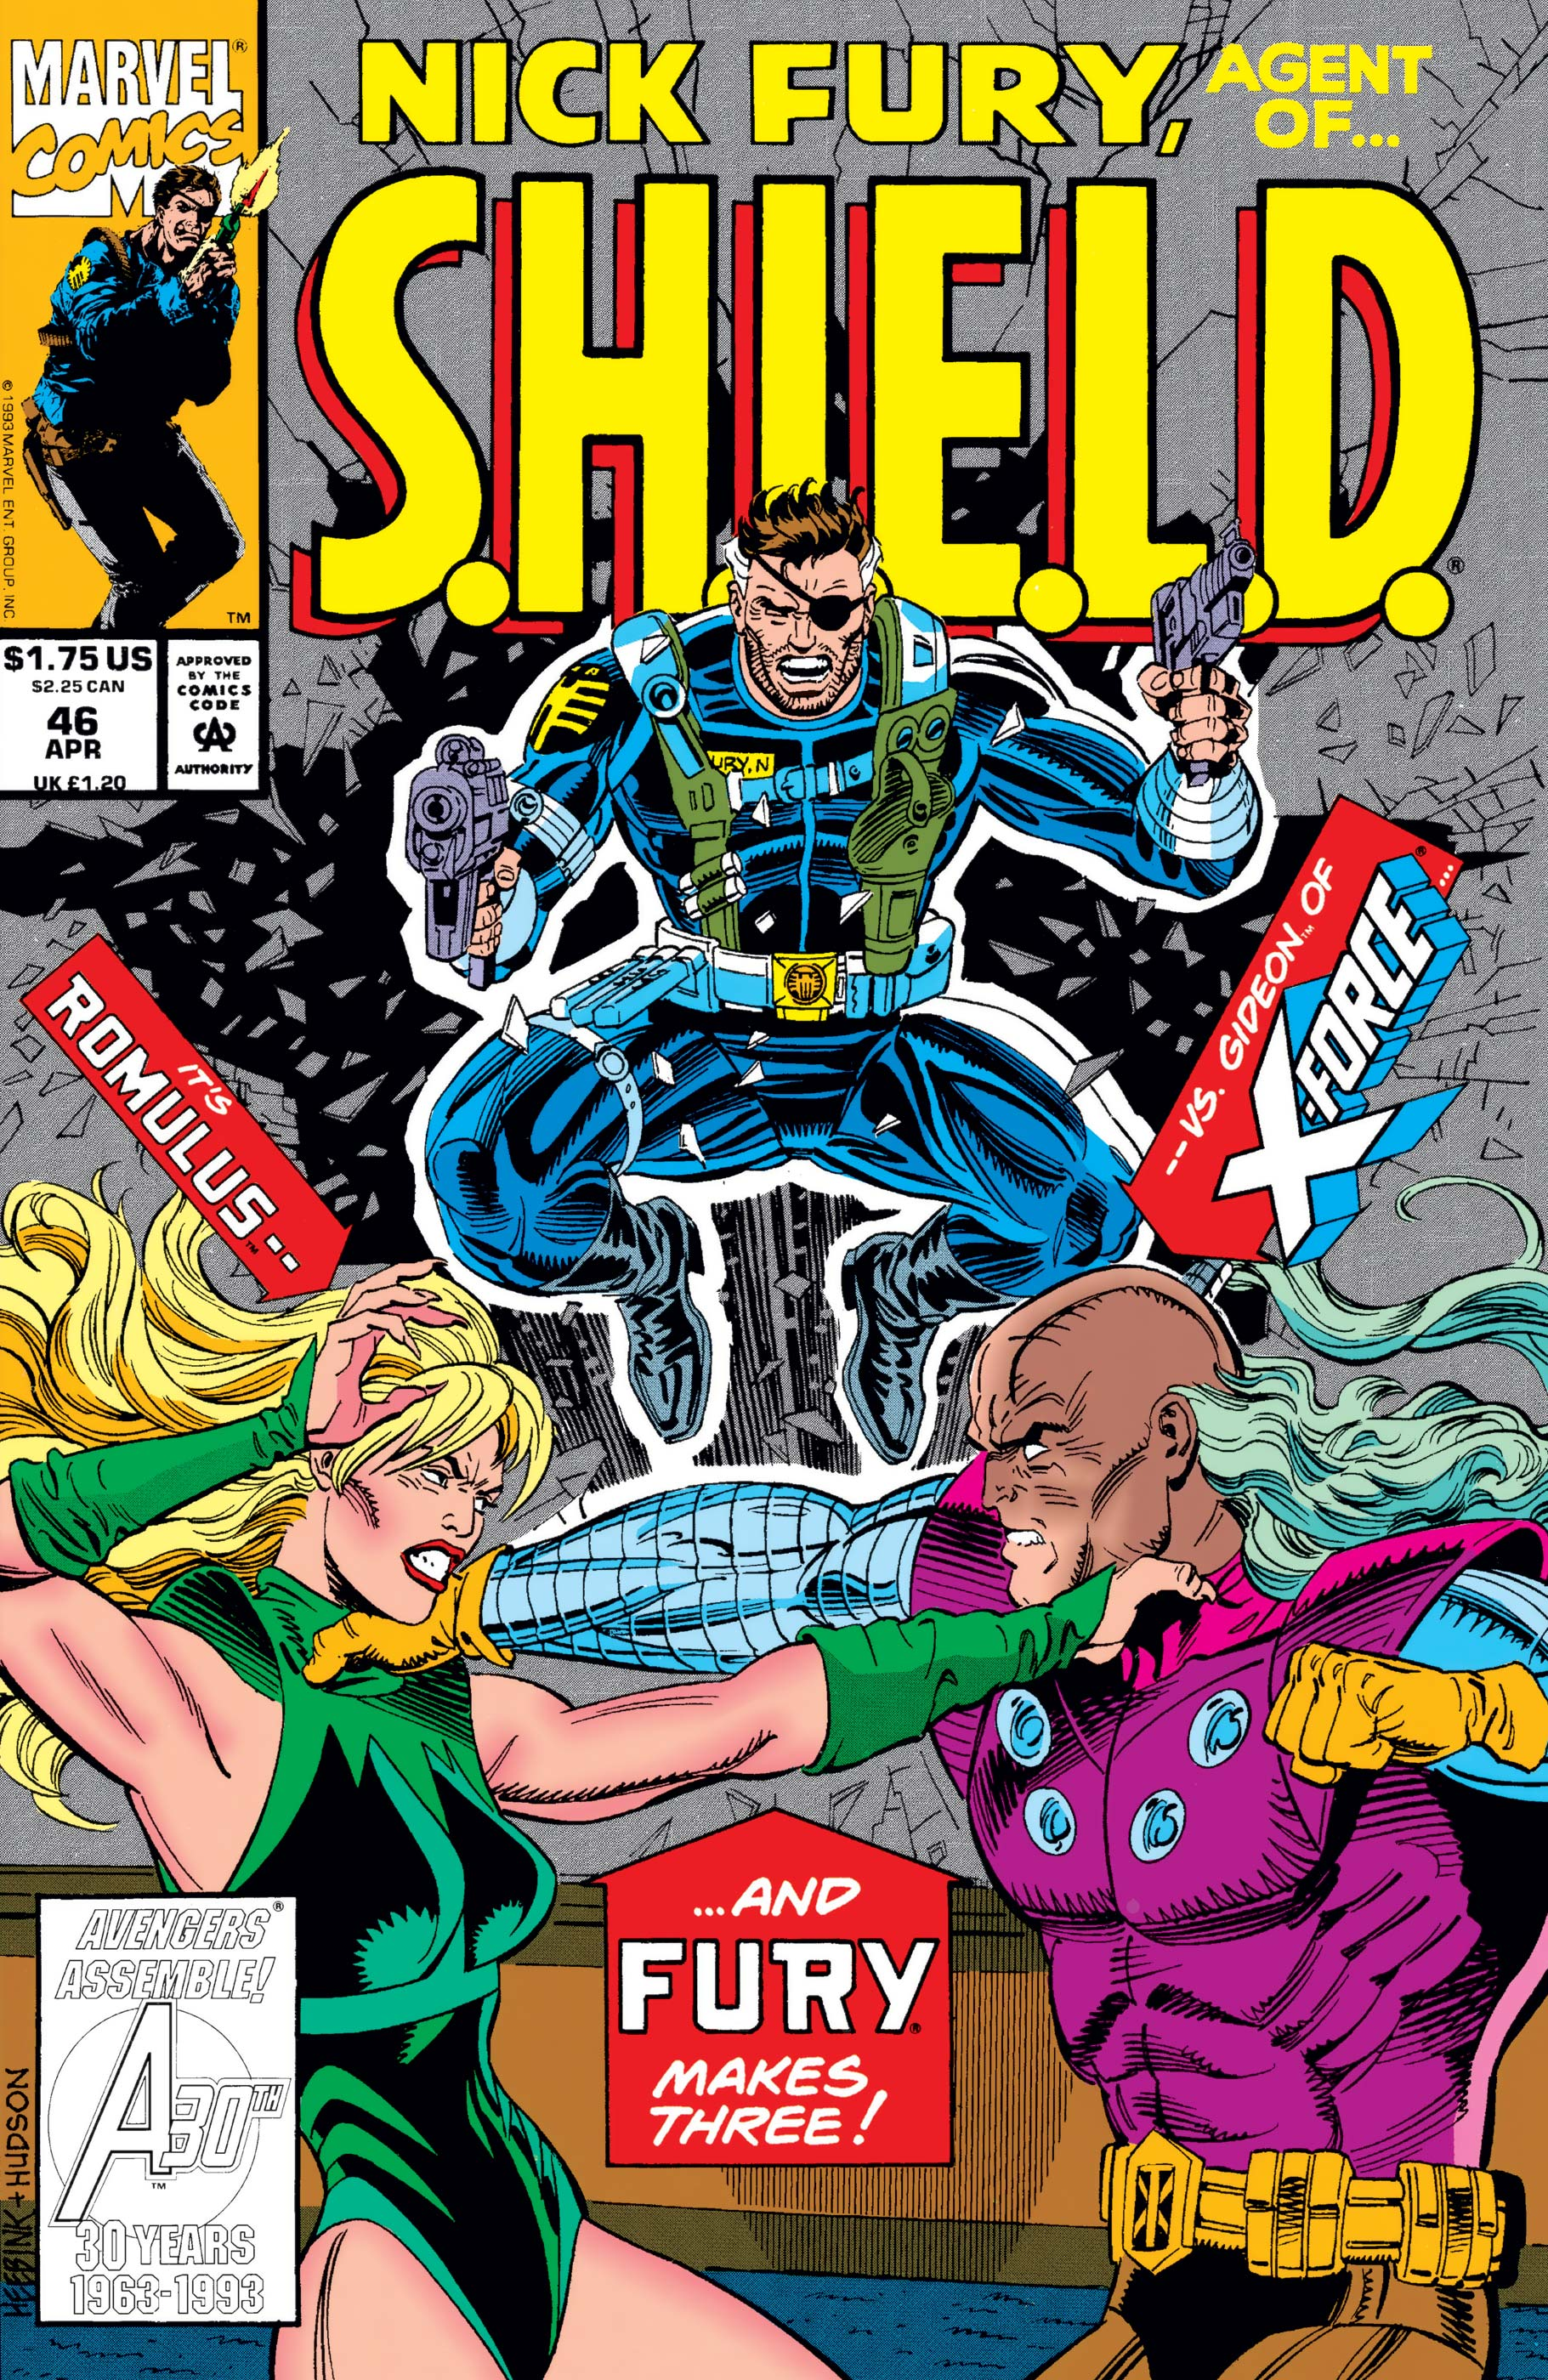 Nick Fury, Agent of S.H.I.E.L.D. (1989) #46